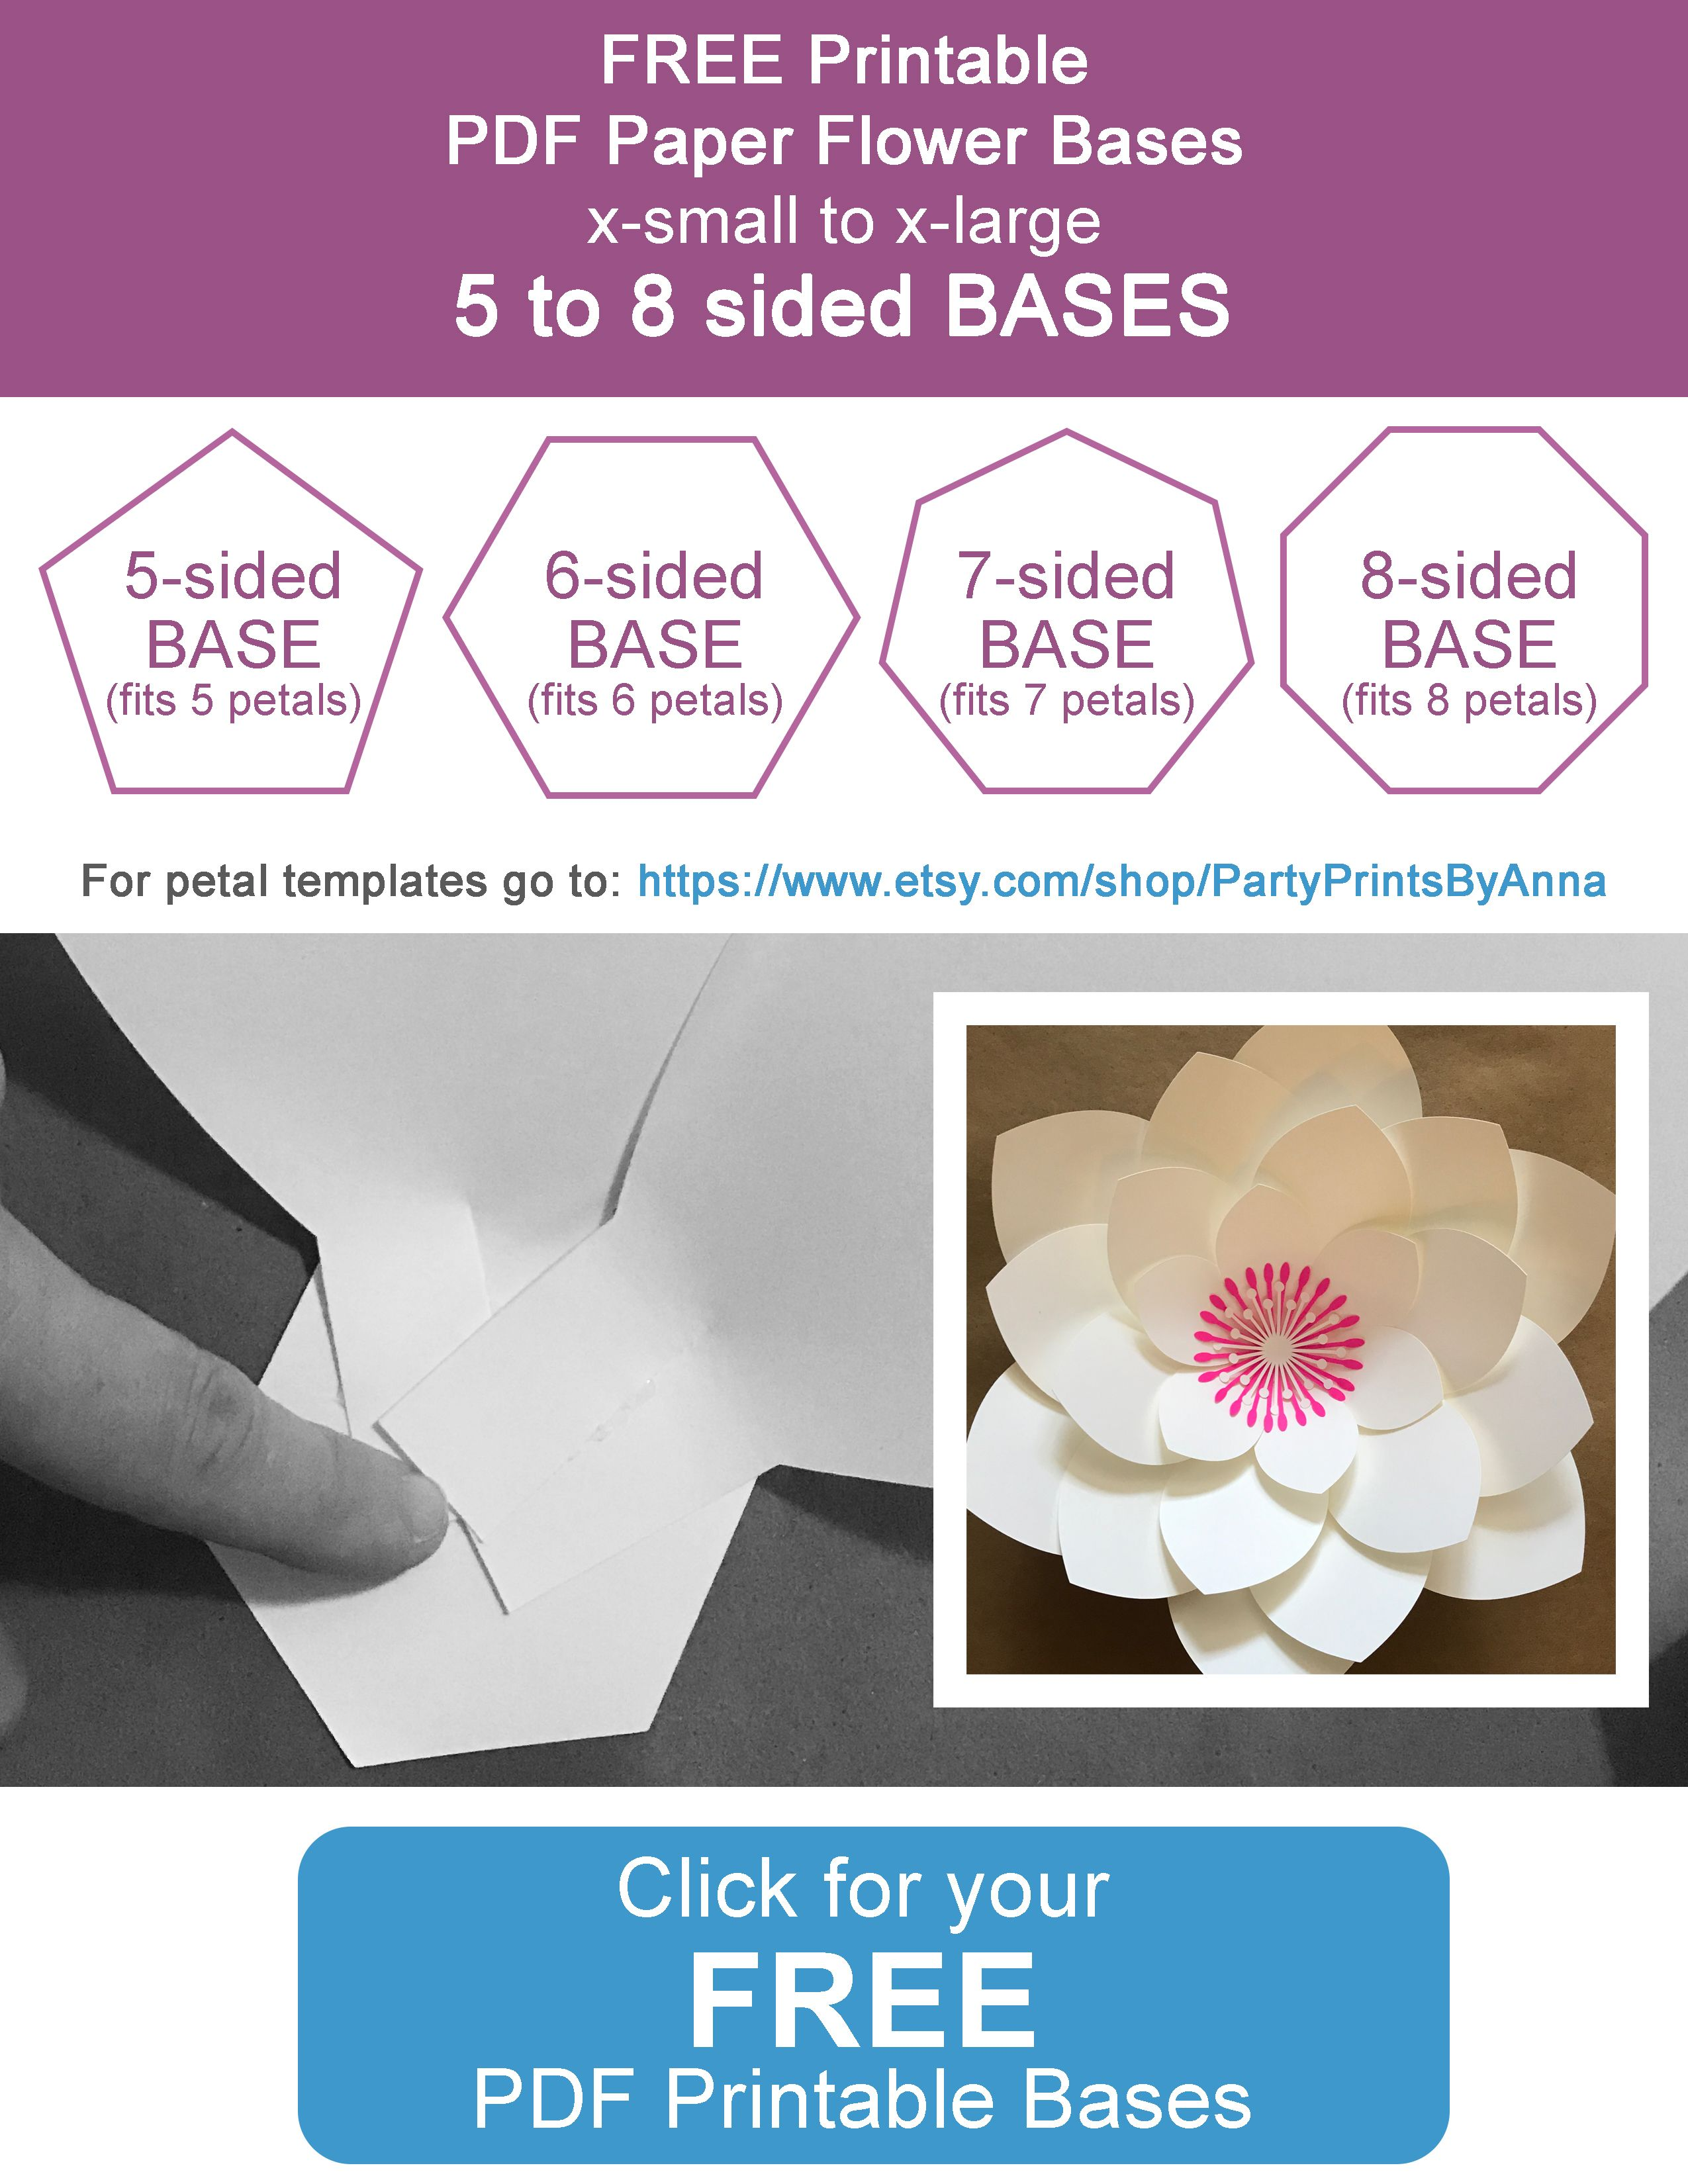 FREE Printable Paper Flower Bases 5 8 sided